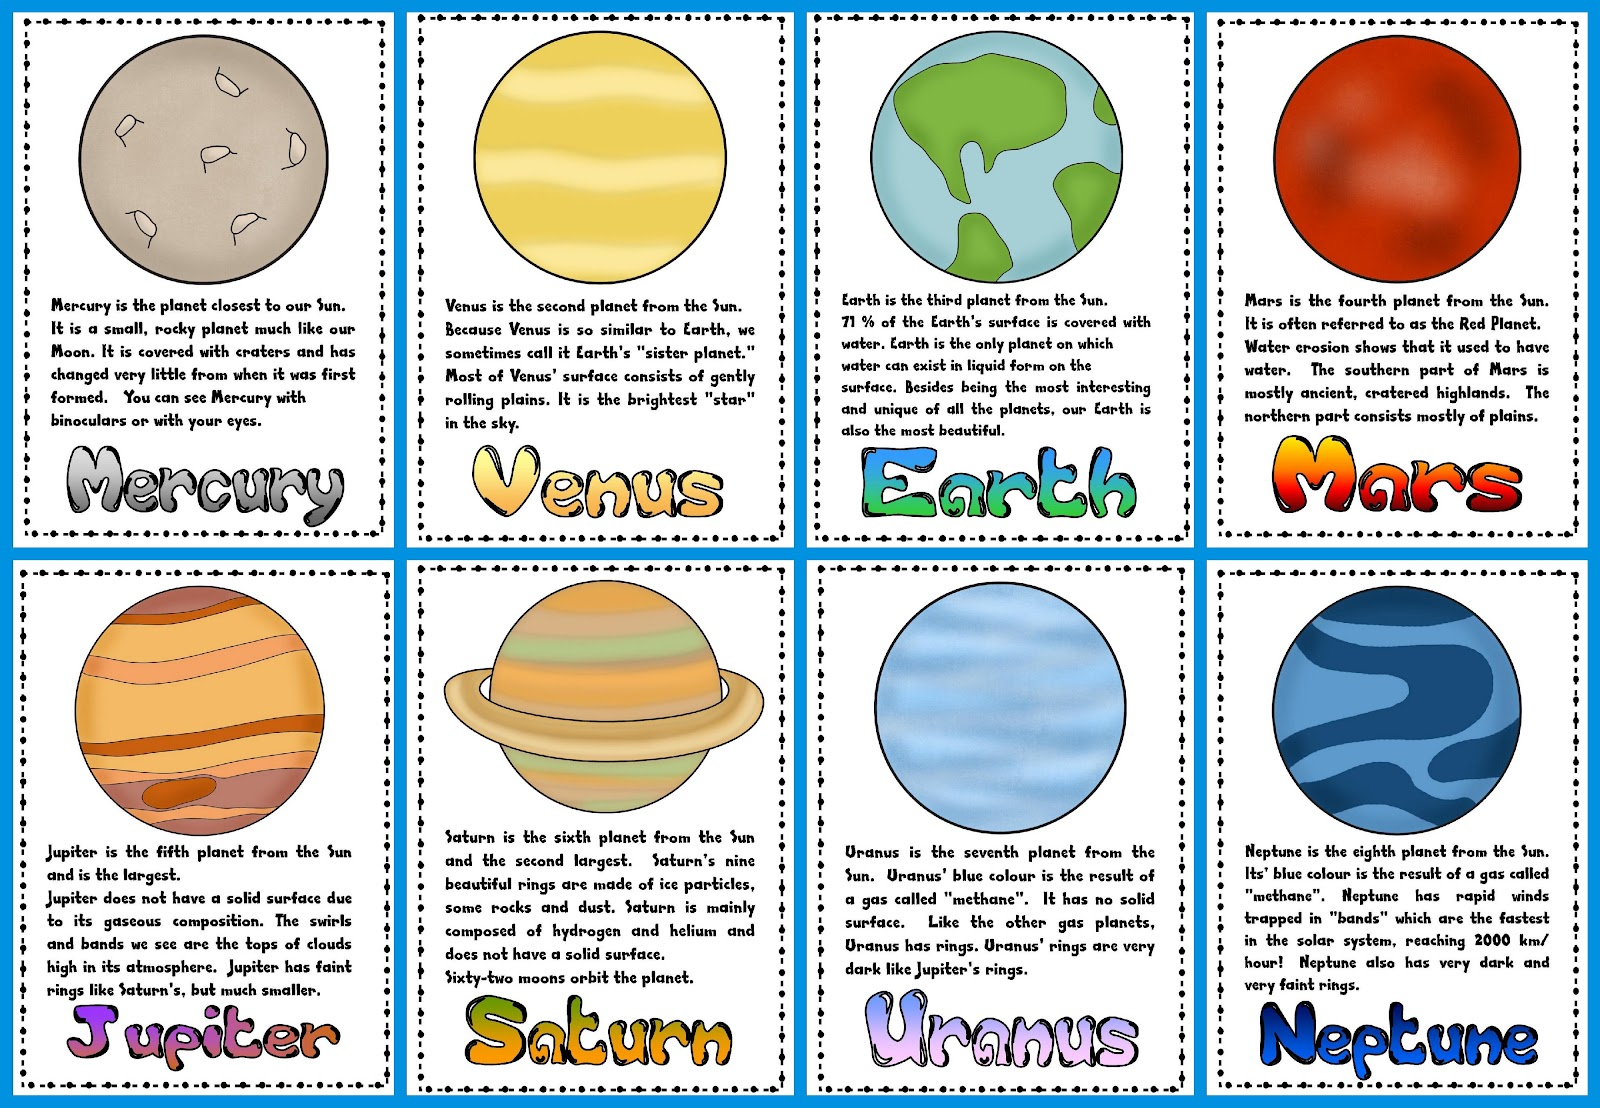 Time off work and 'The Planets'! - Teacher's Toolkit